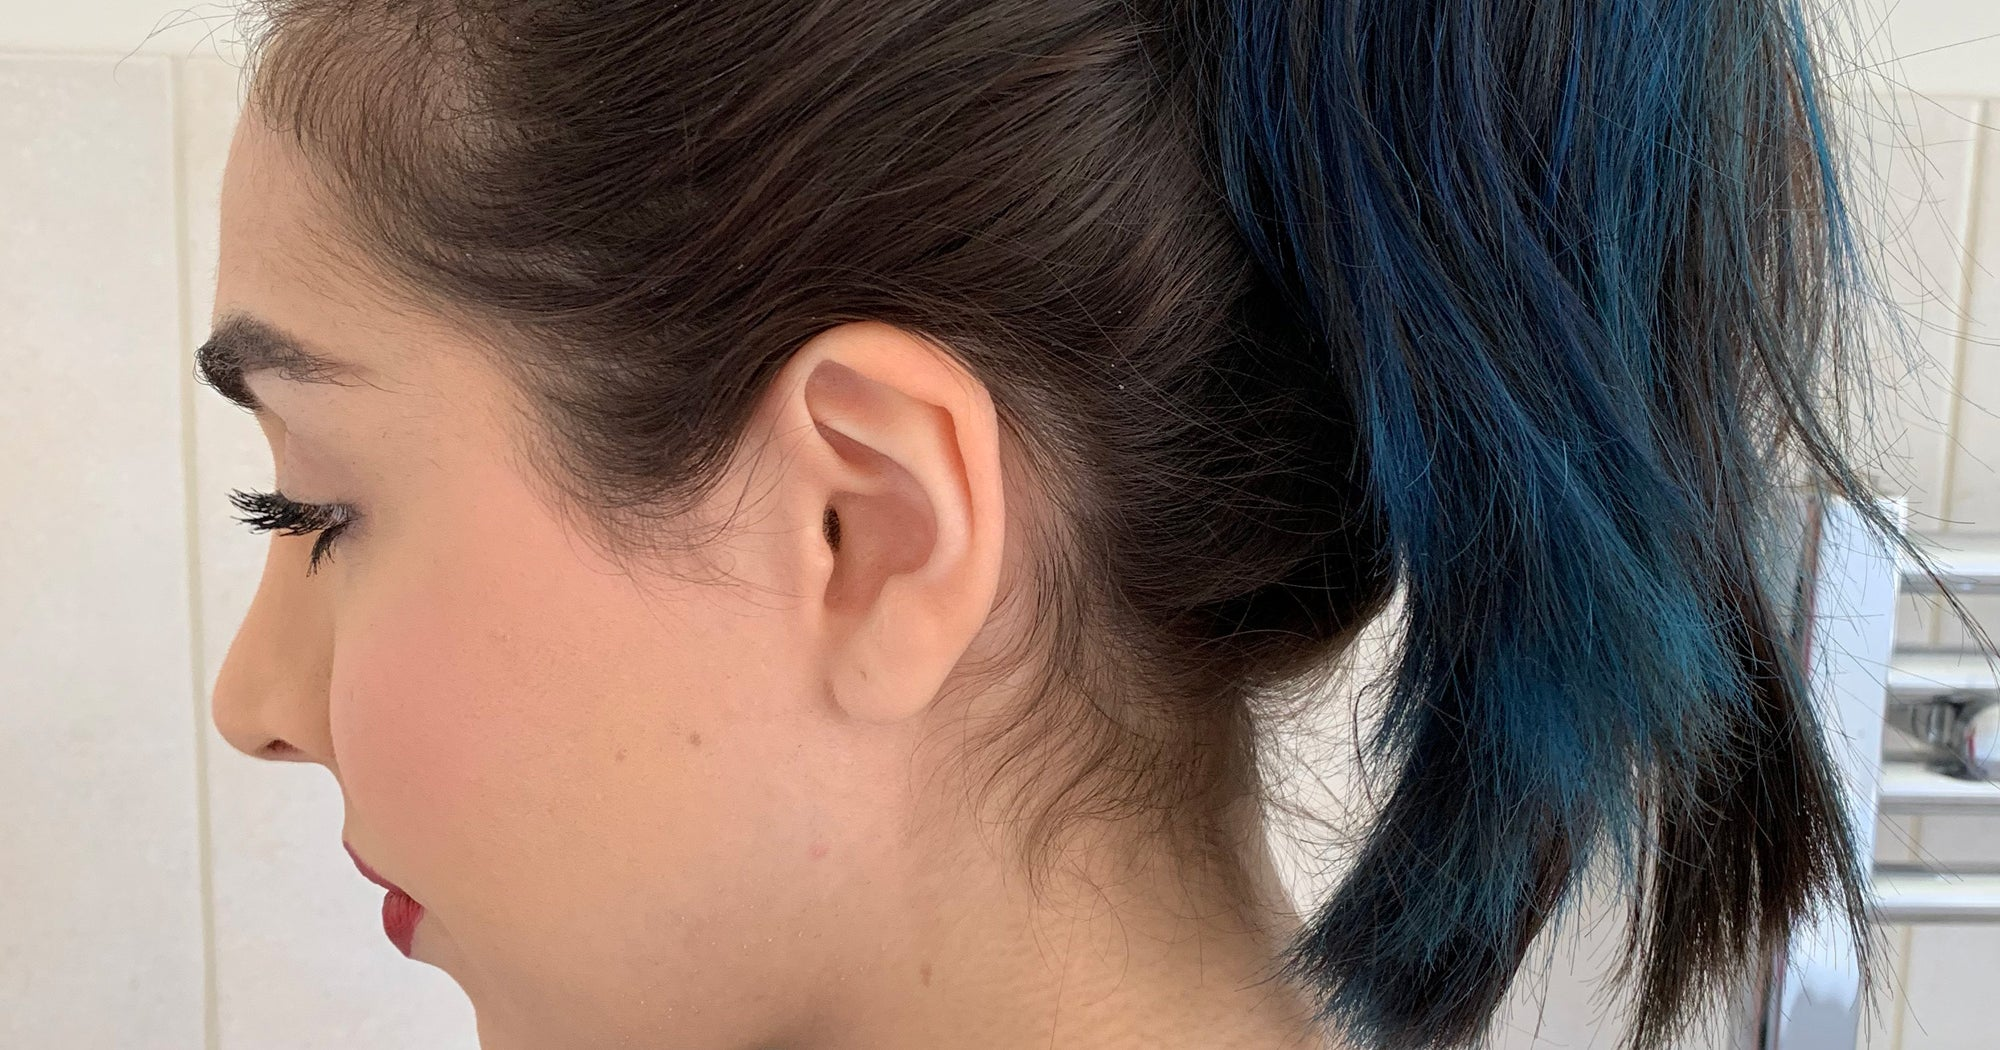 I Tried TikTok's 'Perfect Ponytail' Hack & I'll Wear My Hair Up All Summer